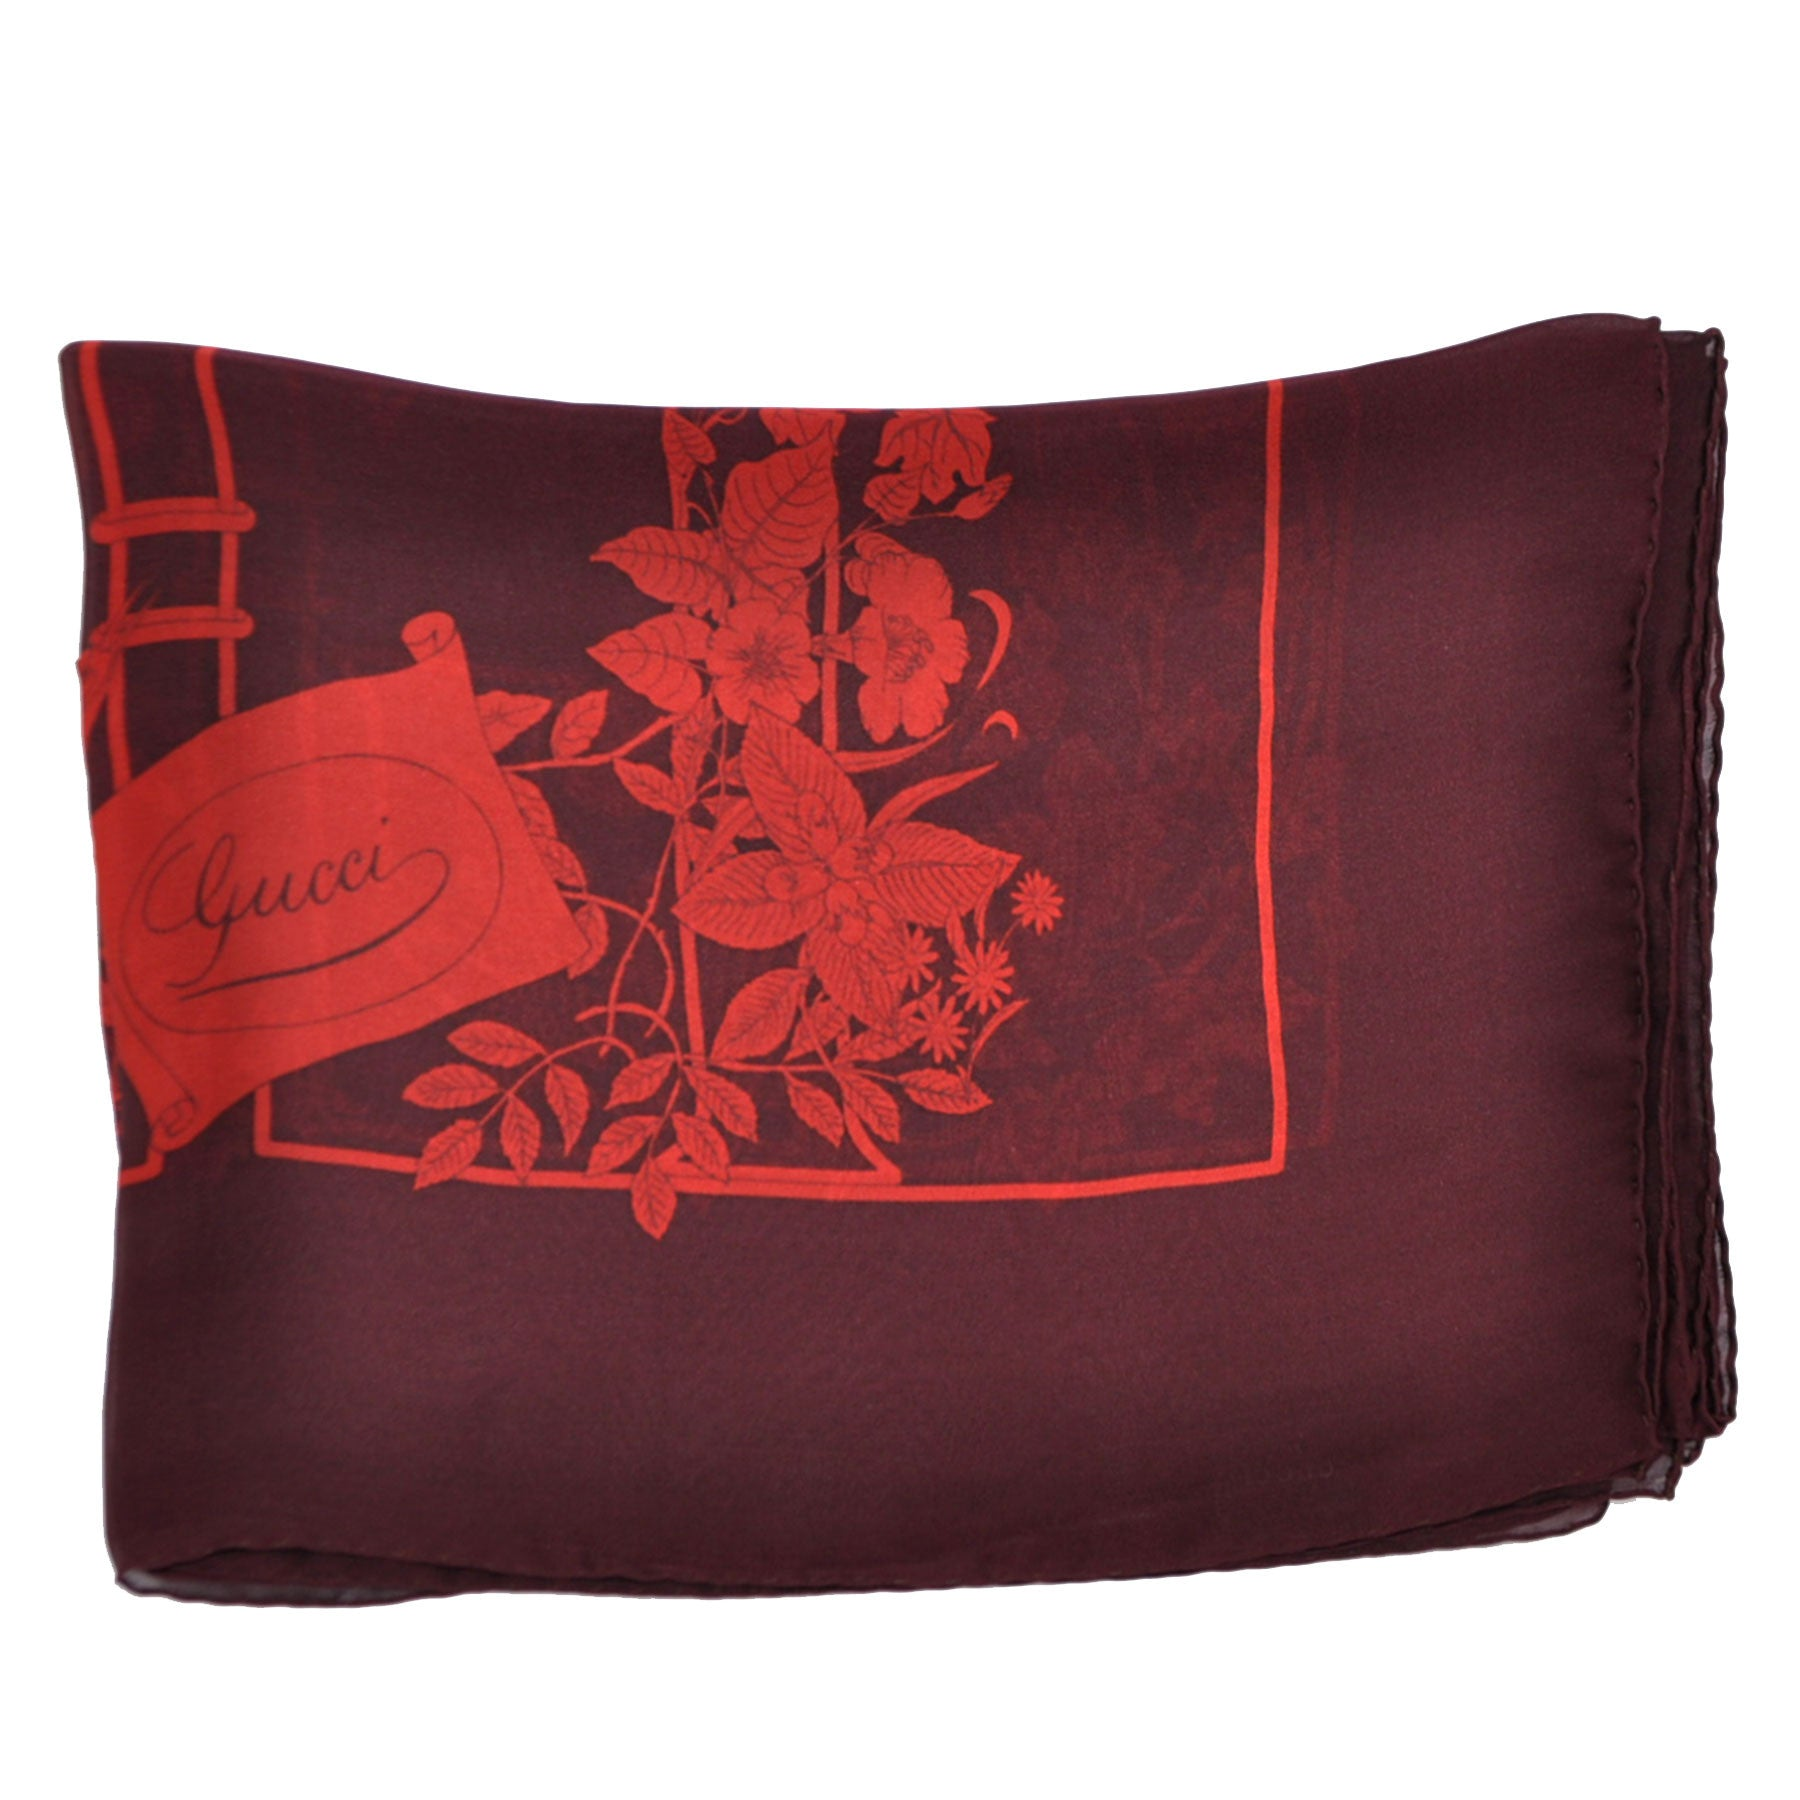 Genuine Gucci Stola Wine Purple Extra Large Square Scarf